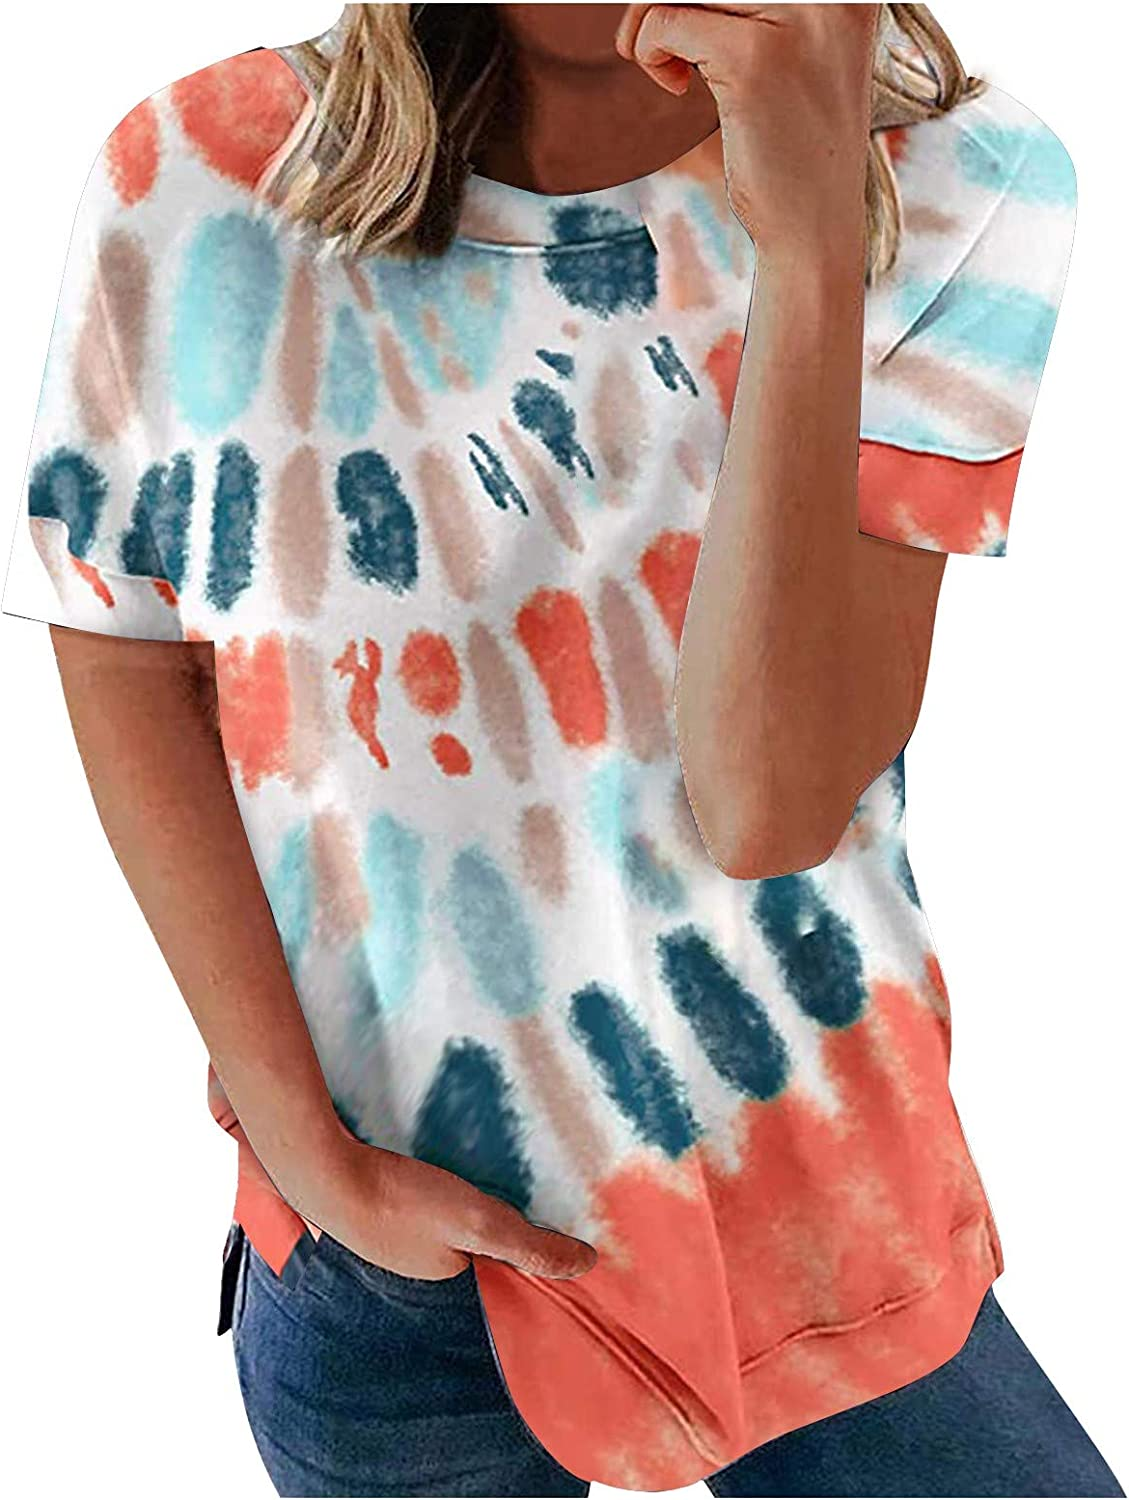 FABIURT Summer Tops for Women,Womens Casual Comfort Tie Dye Printed Short Sleeve O-Neck T Shirts Loose Blouses Tunic Top